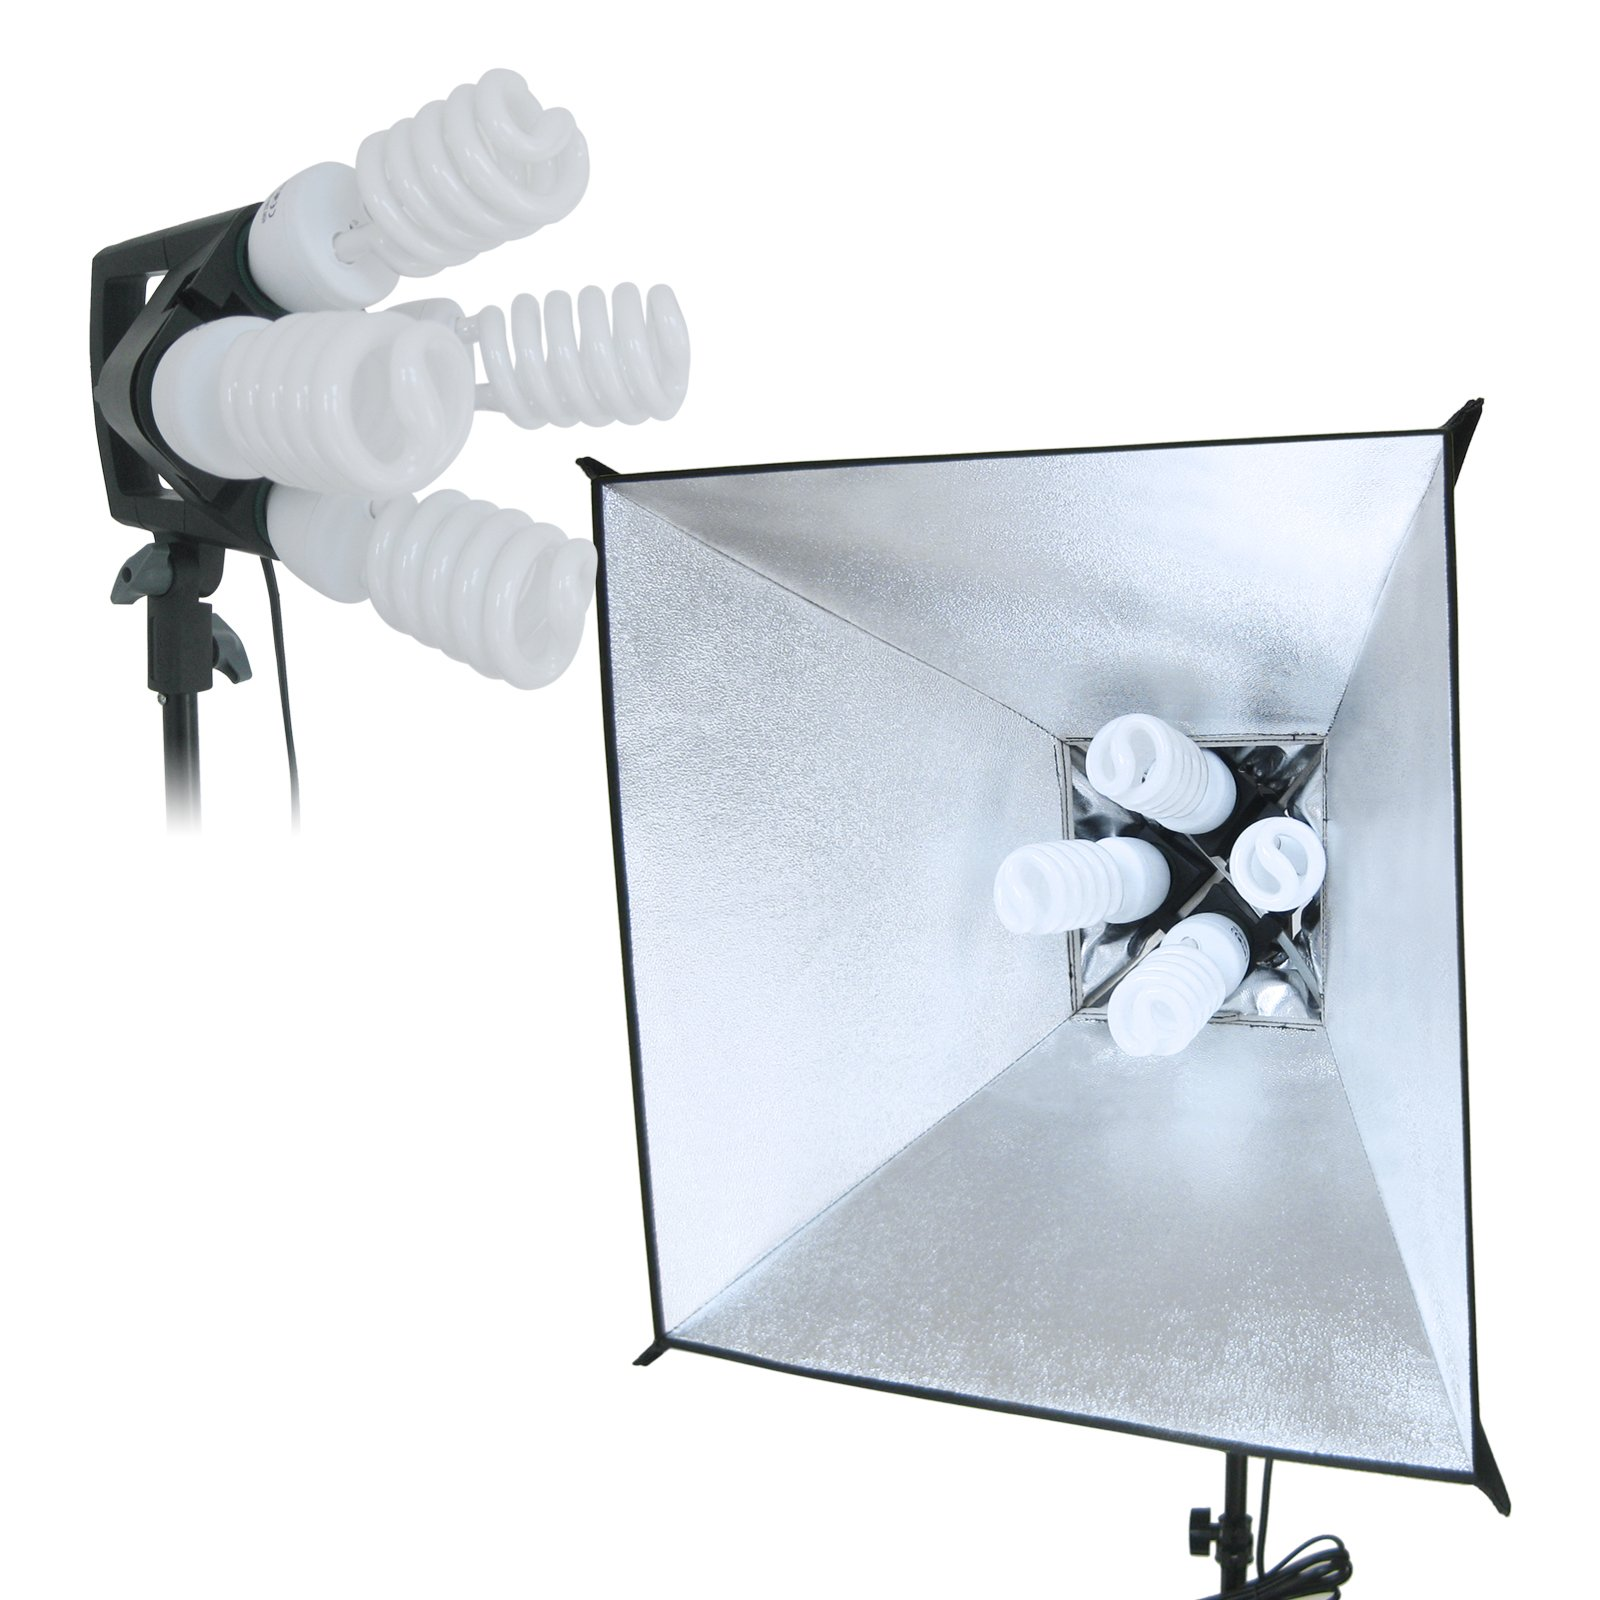 Linco Lincostore 2400 Watt Photo Studio Lighting 10x20ft White Backdrop Photography Background Stand Light Kit AM144-W by Linco (Image #3)